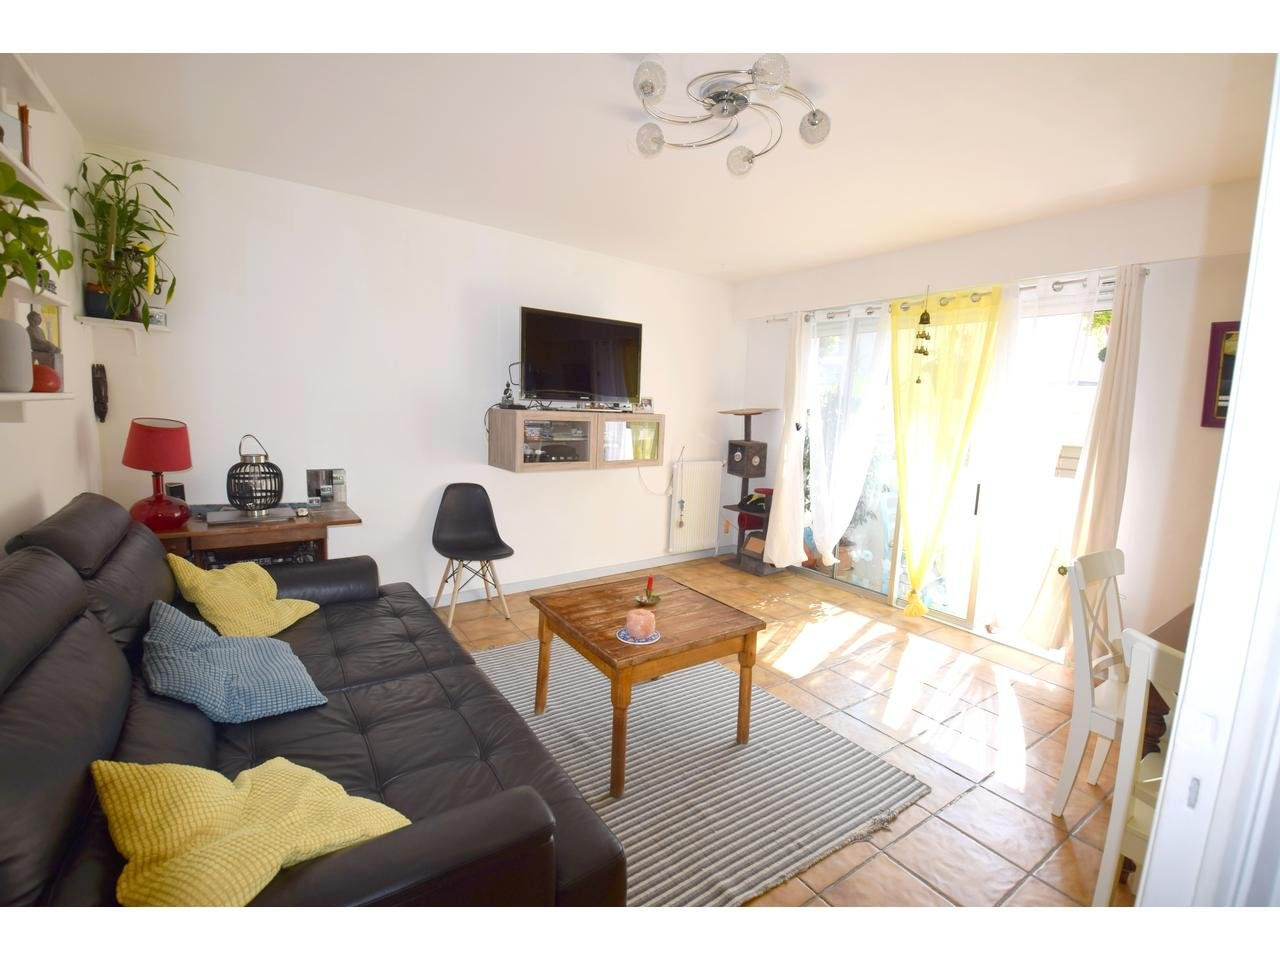 Appartement  3 Rooms 57.43m2  for sale   172000 €